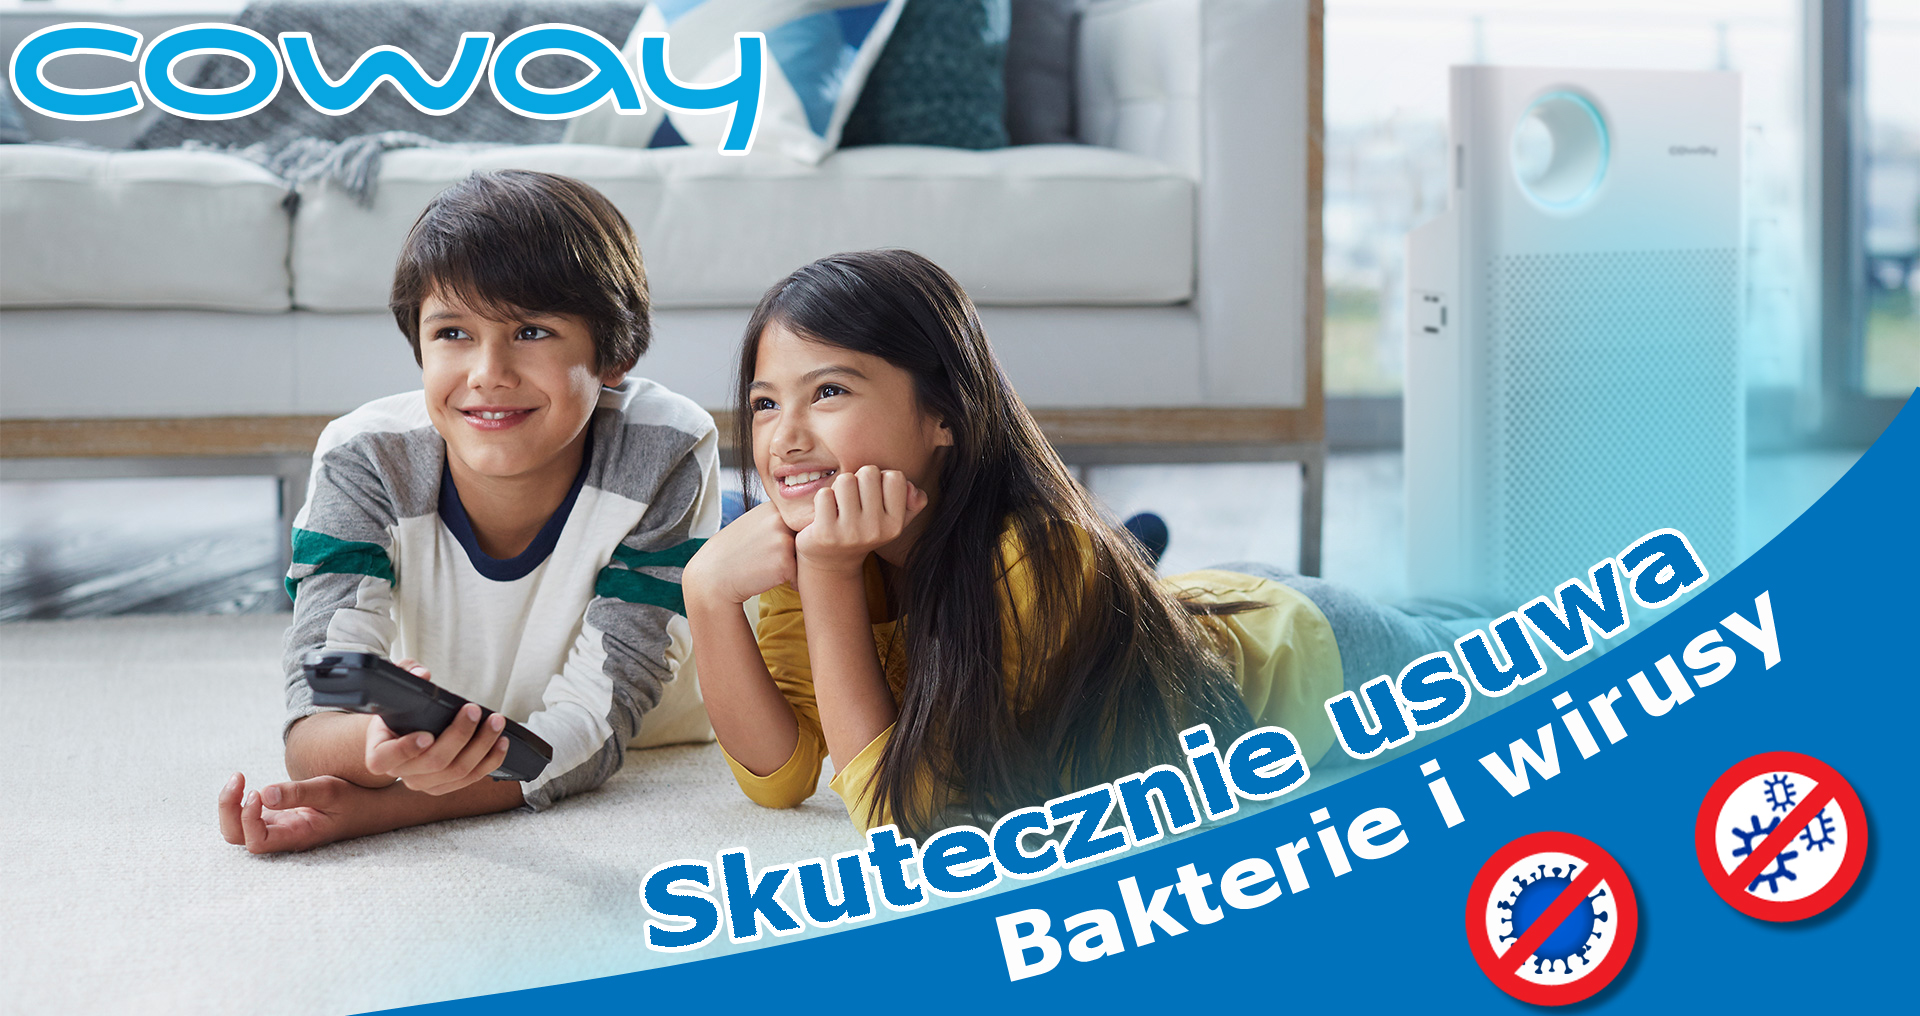 Coway Classic wirusy i bakterie